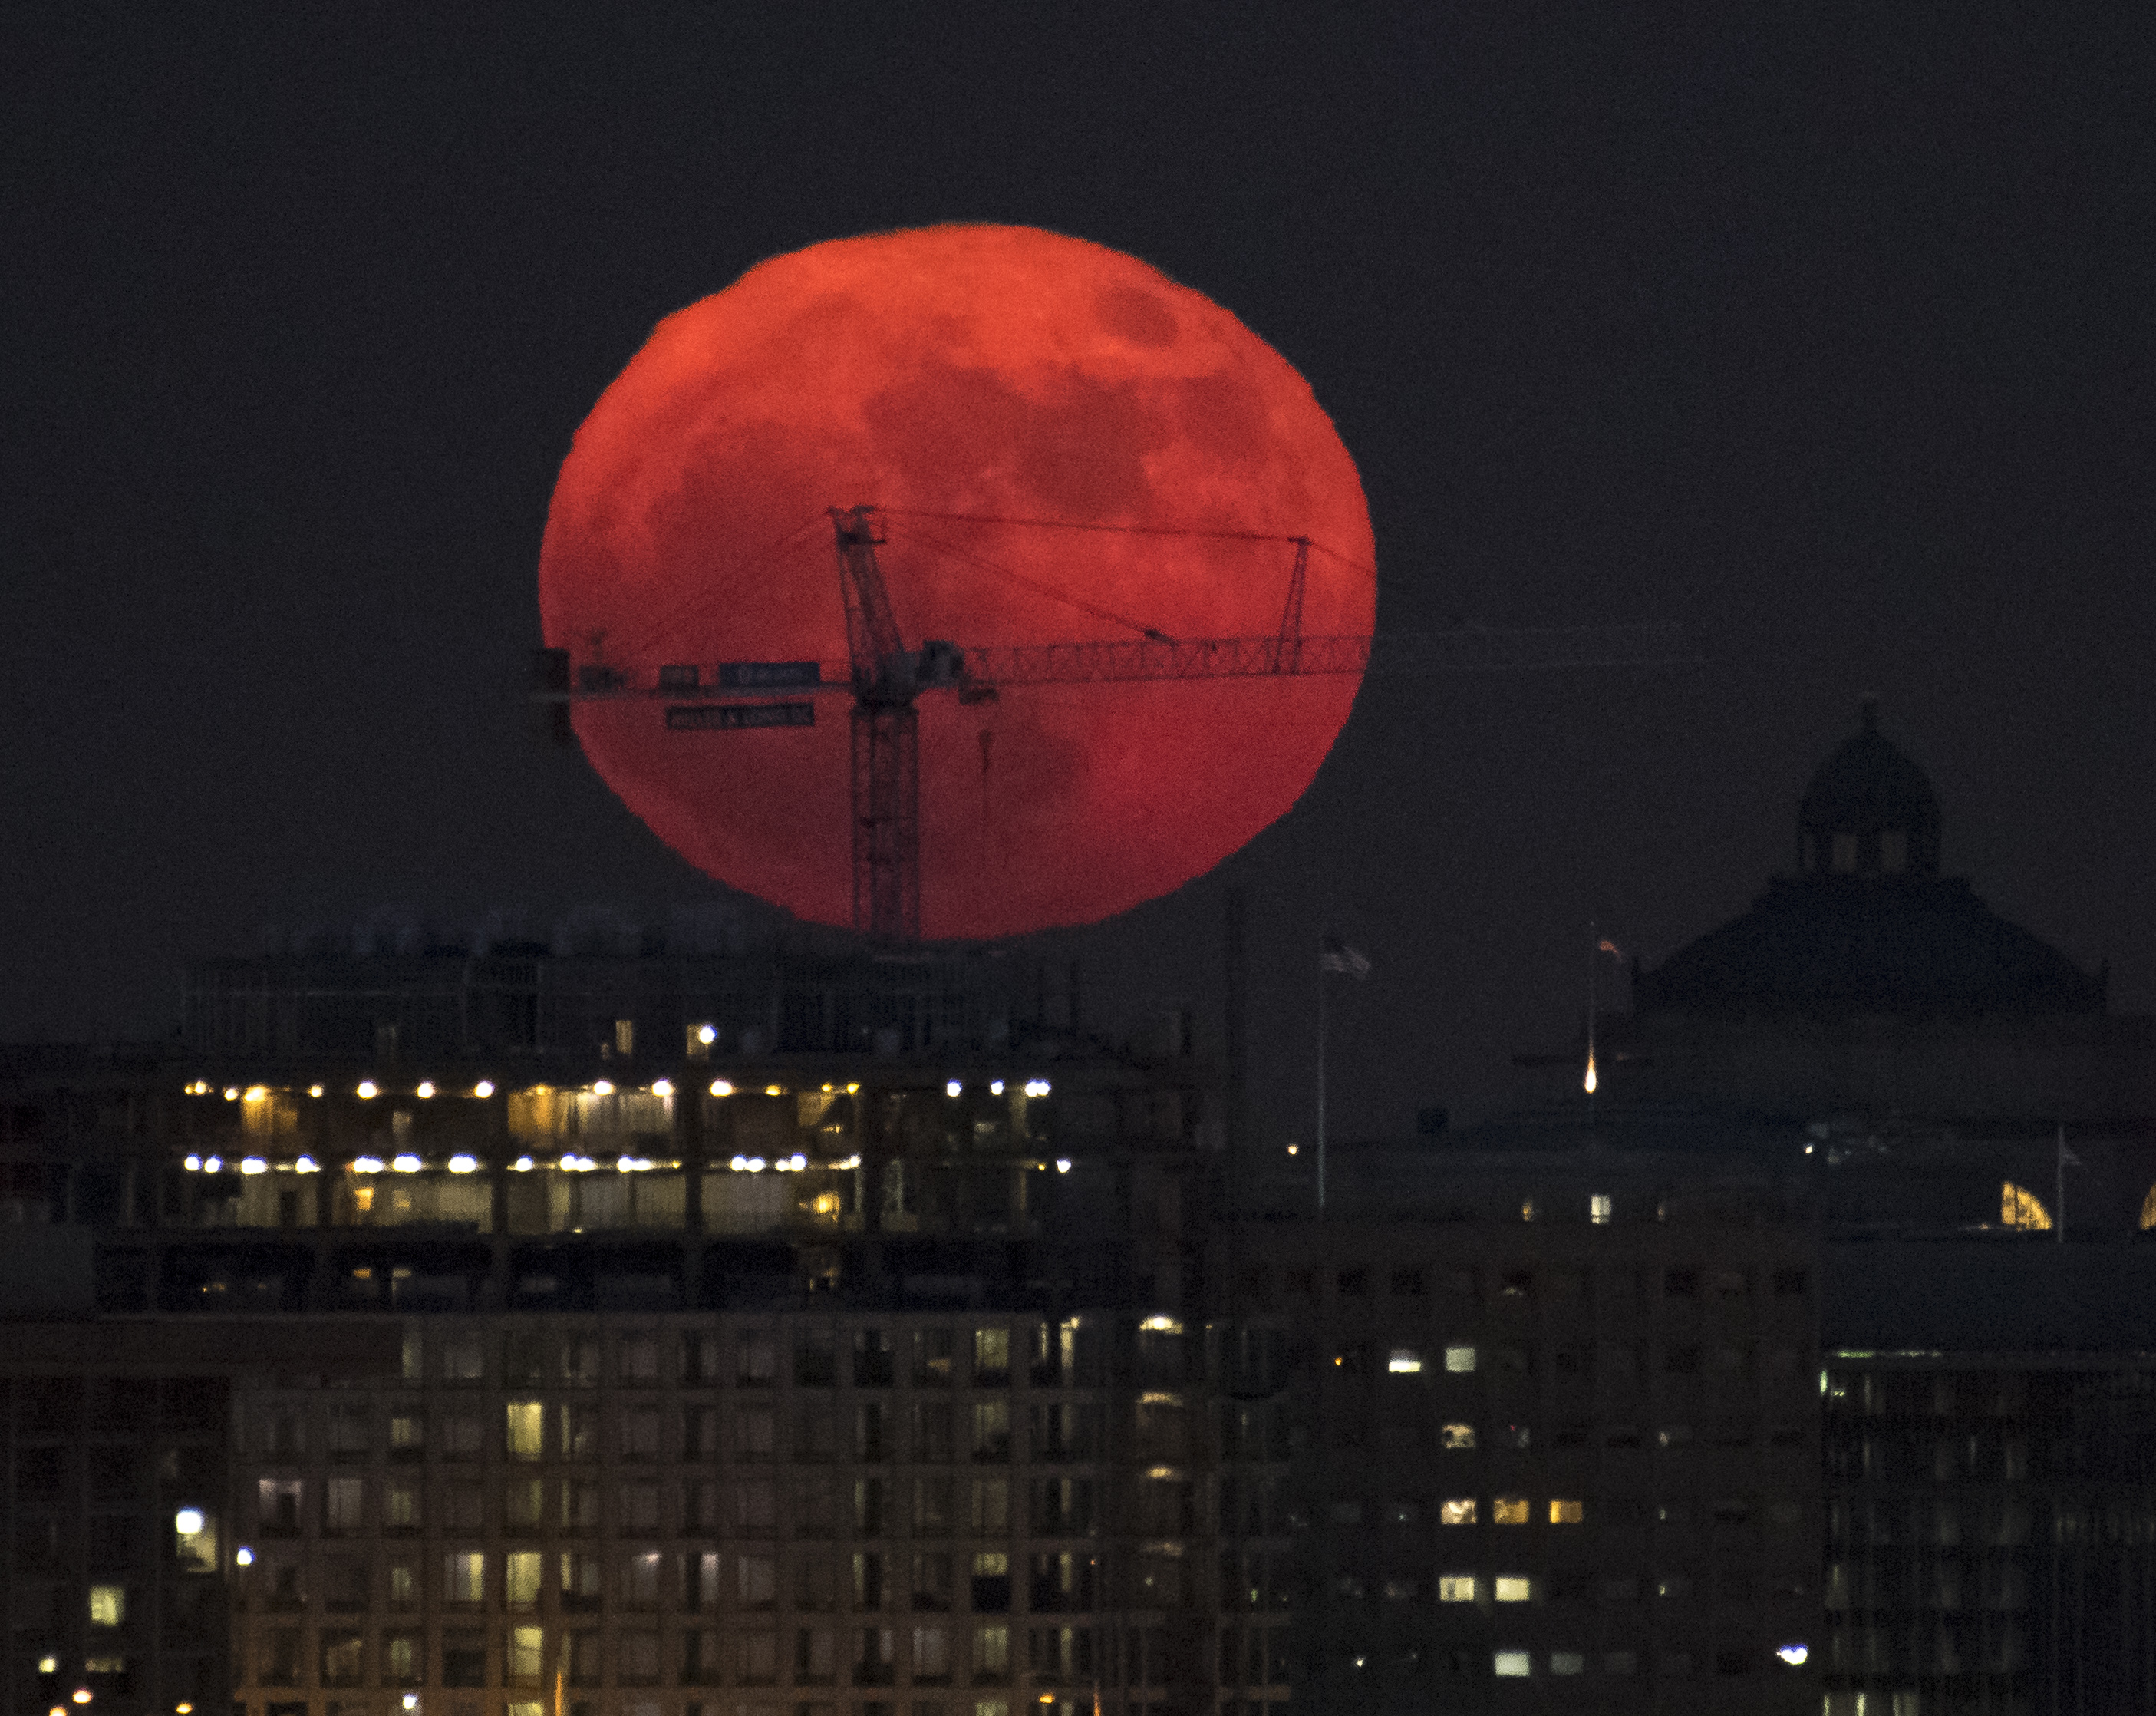 Full moon rises behind crane.